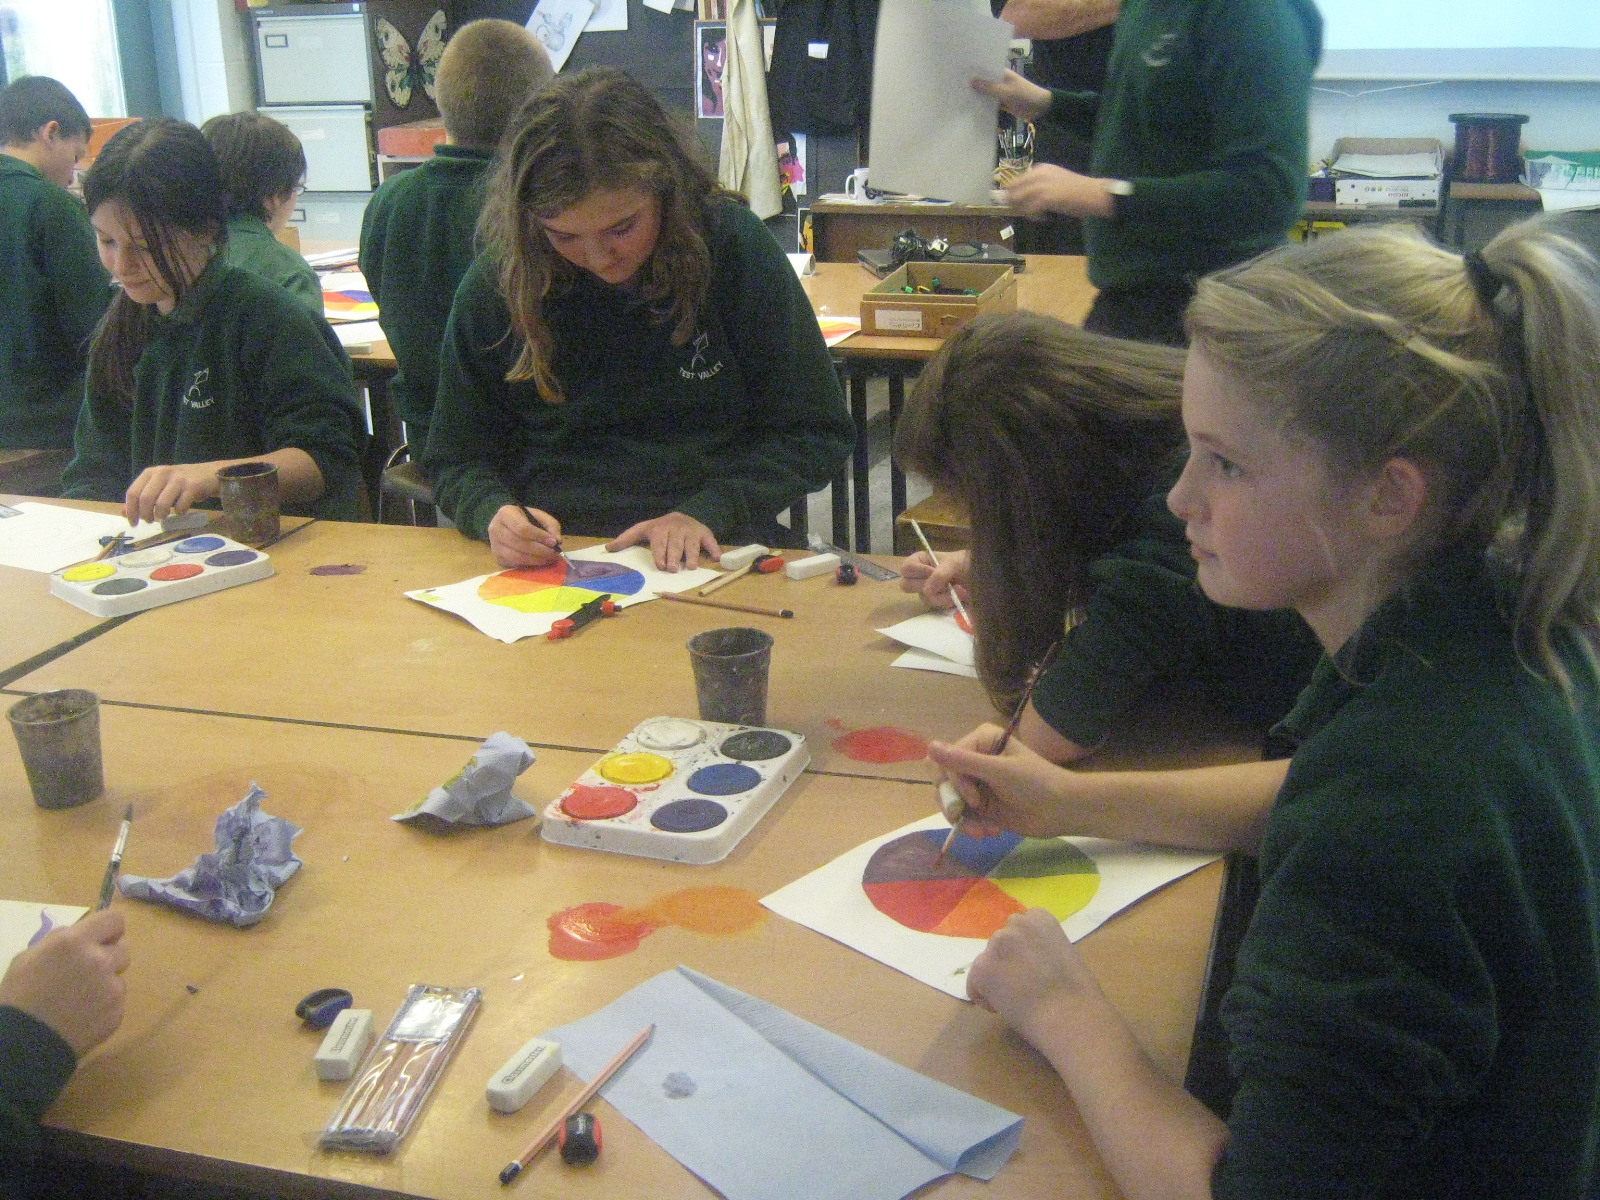 Year 7s and 8s Working in the Classroom